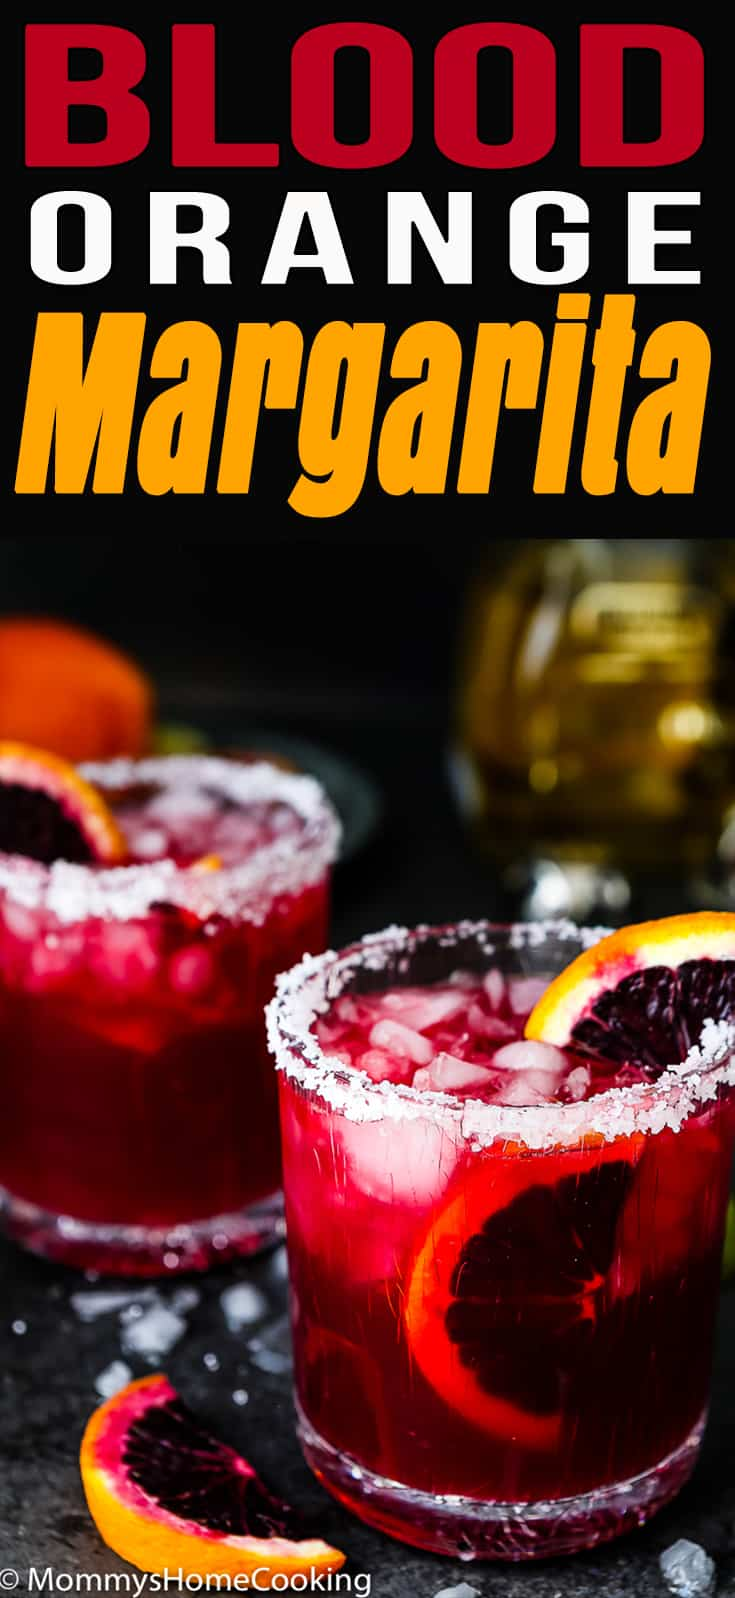 ThisBlood Orange Margarita is a gorgeous and delicious cocktail perfect for celebrating just about anything. It's refreshing, sweet, and full of citrusy flavor. If you make this, expect plenty of requests for more. #cocktail #margarita #bloodorange #easy #holidays #winter